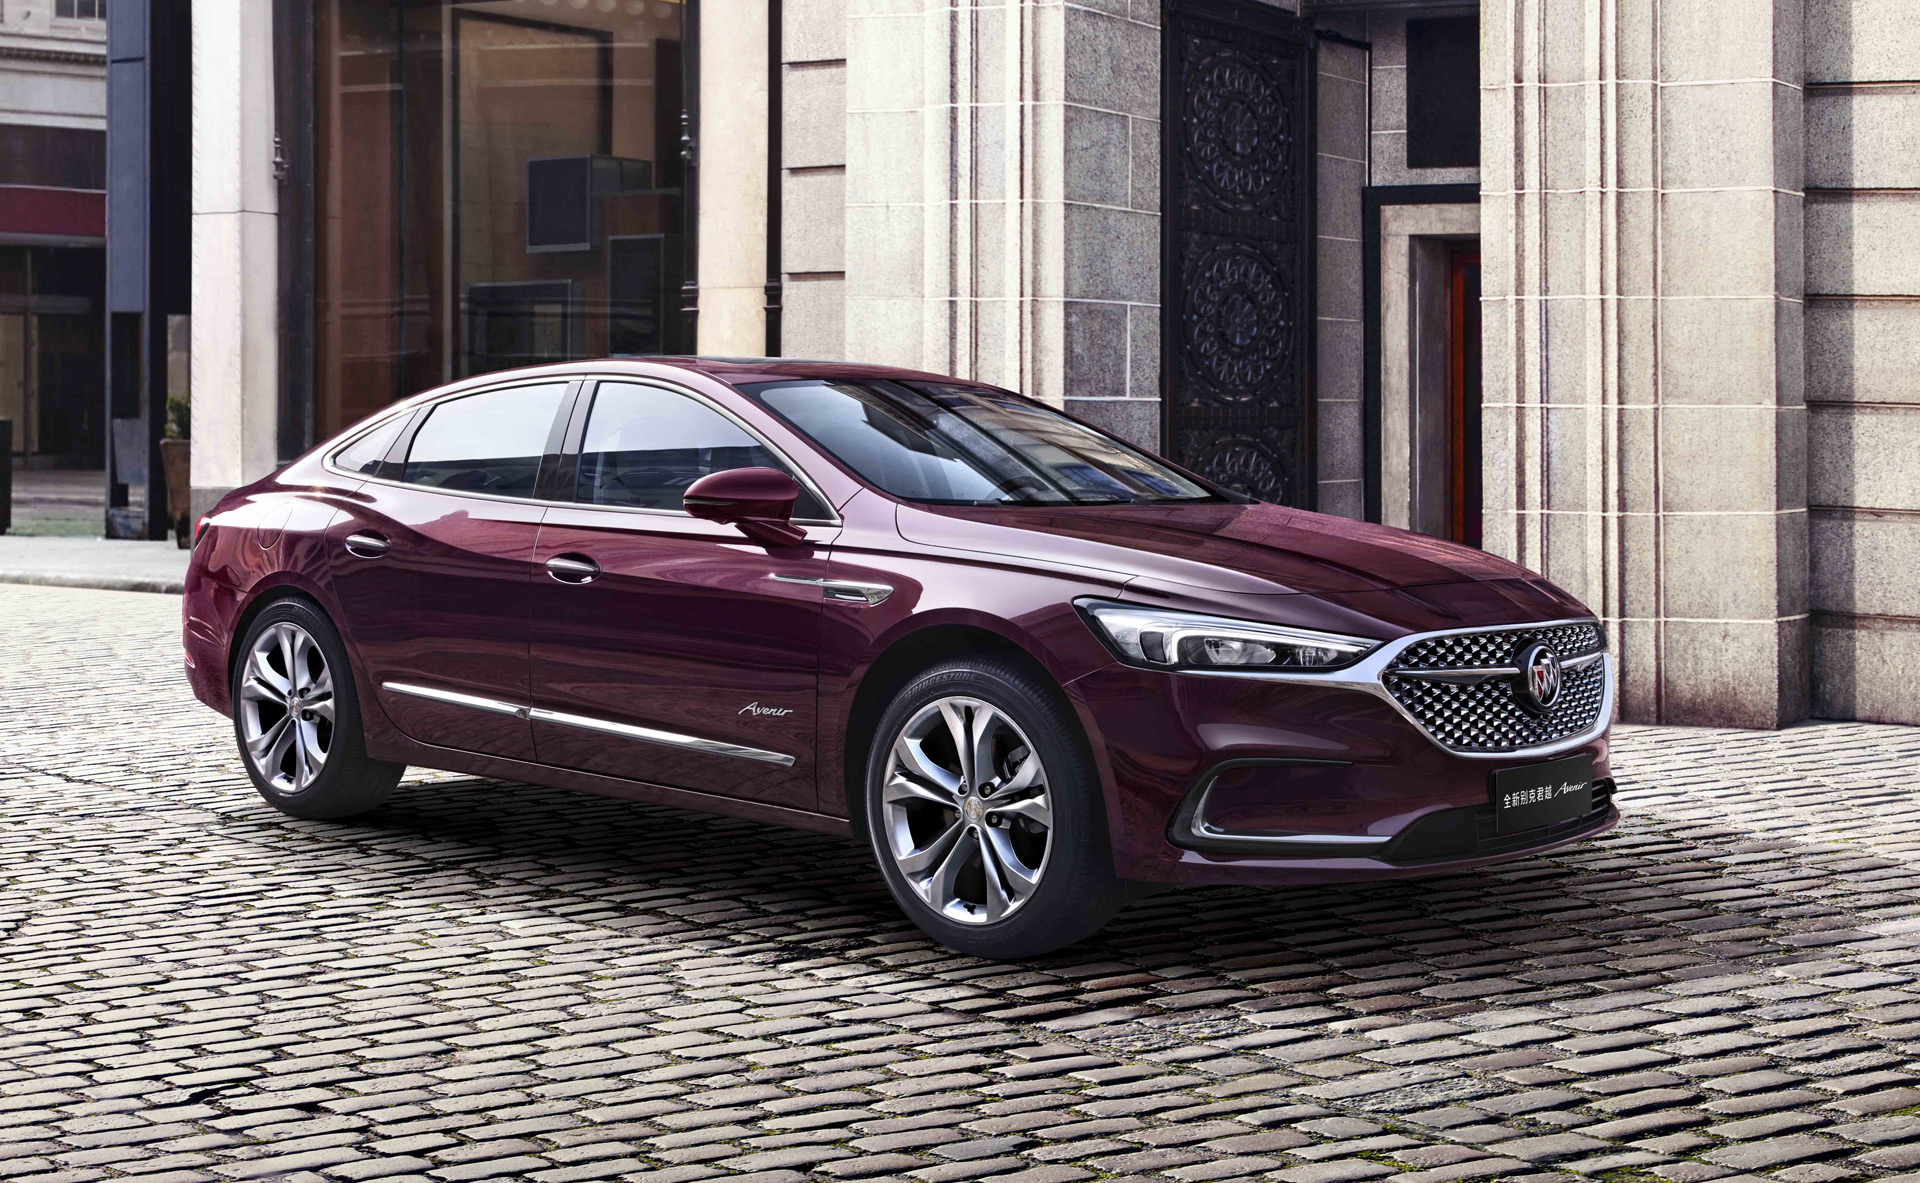 2020 Buick Lacrosse Made Handsome Just As It's Dropped In Us Where Is The 2022 Buick Lacrosse Made